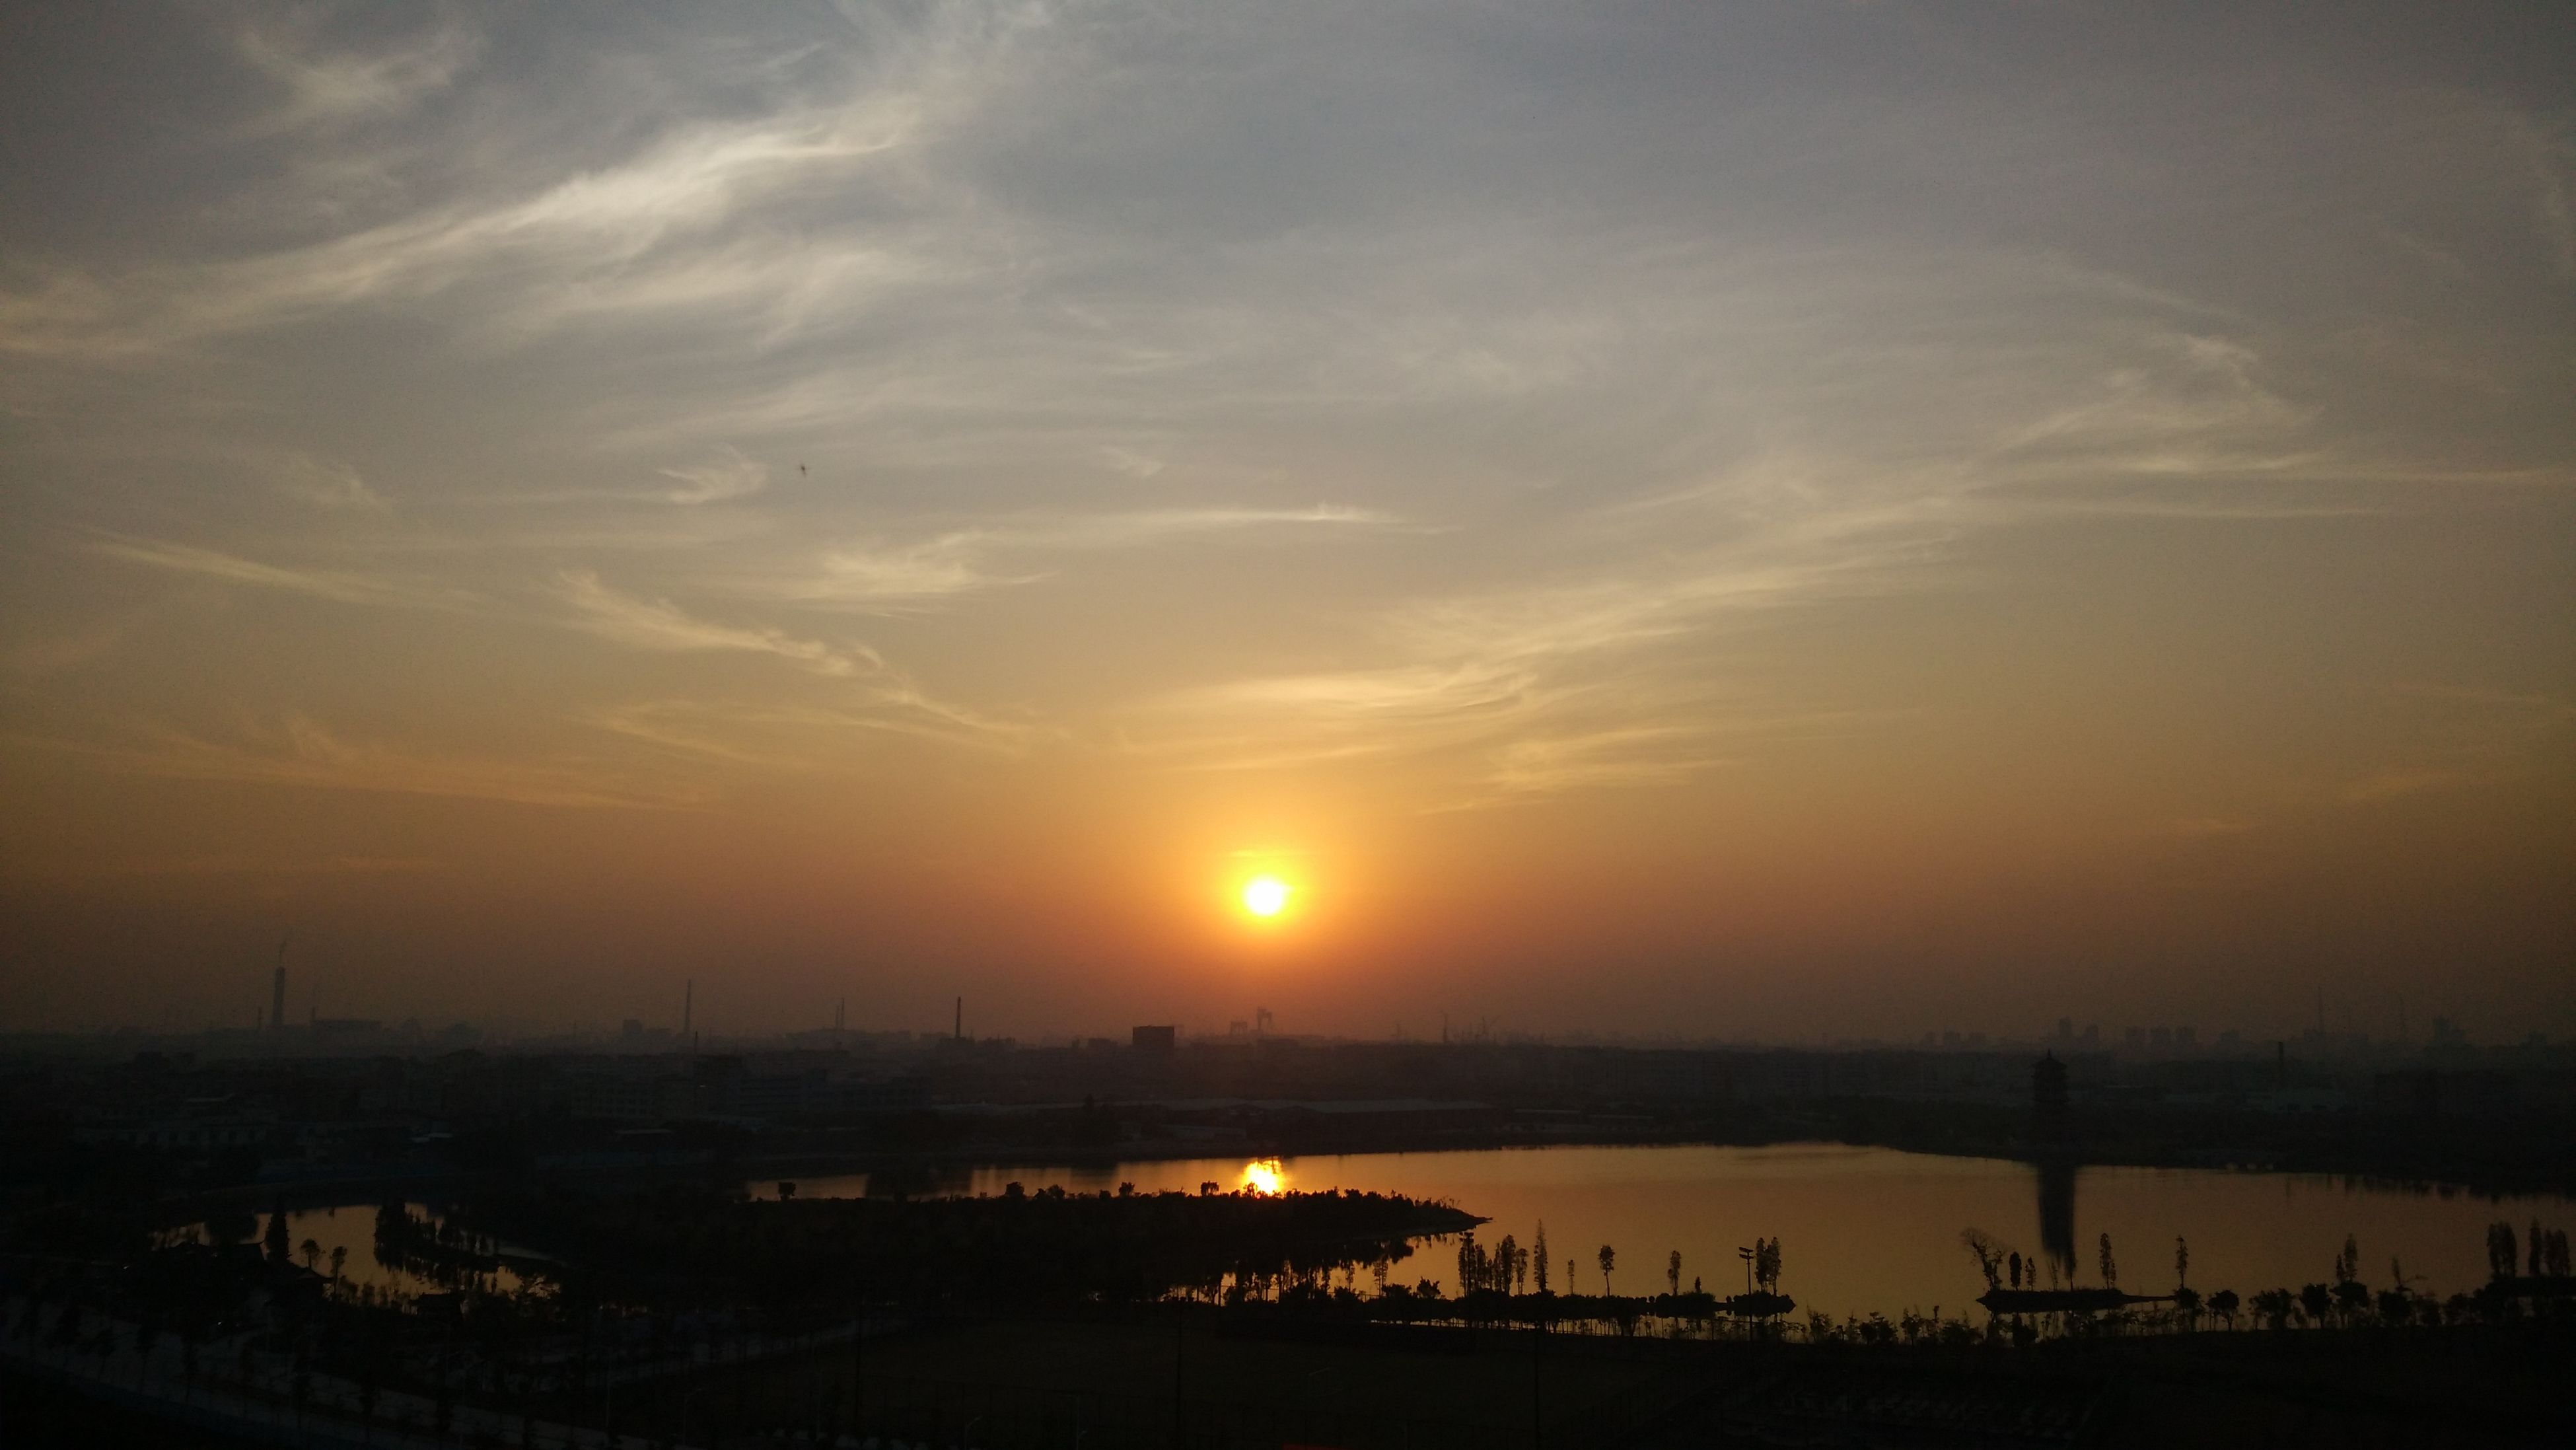 sunset, silhouette, sun, water, sky, orange color, scenics, built structure, cloud - sky, sea, architecture, beauty in nature, nature, tranquility, tranquil scene, connection, river, idyllic, sunlight, outdoors